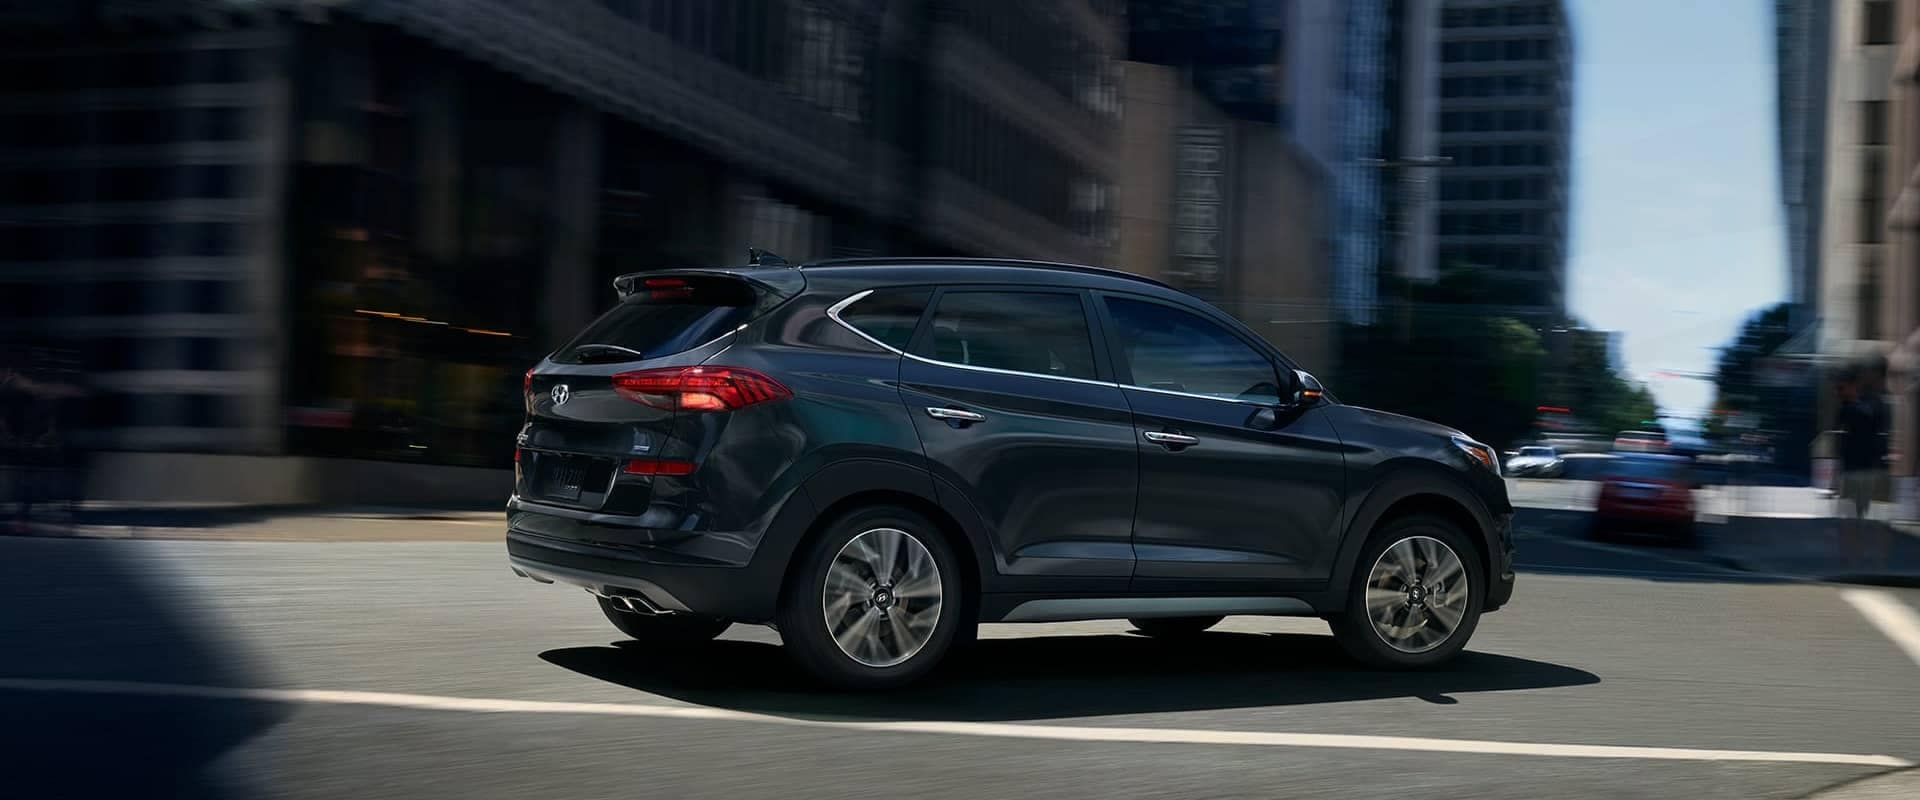 2019 Hyundai Tucson In The City